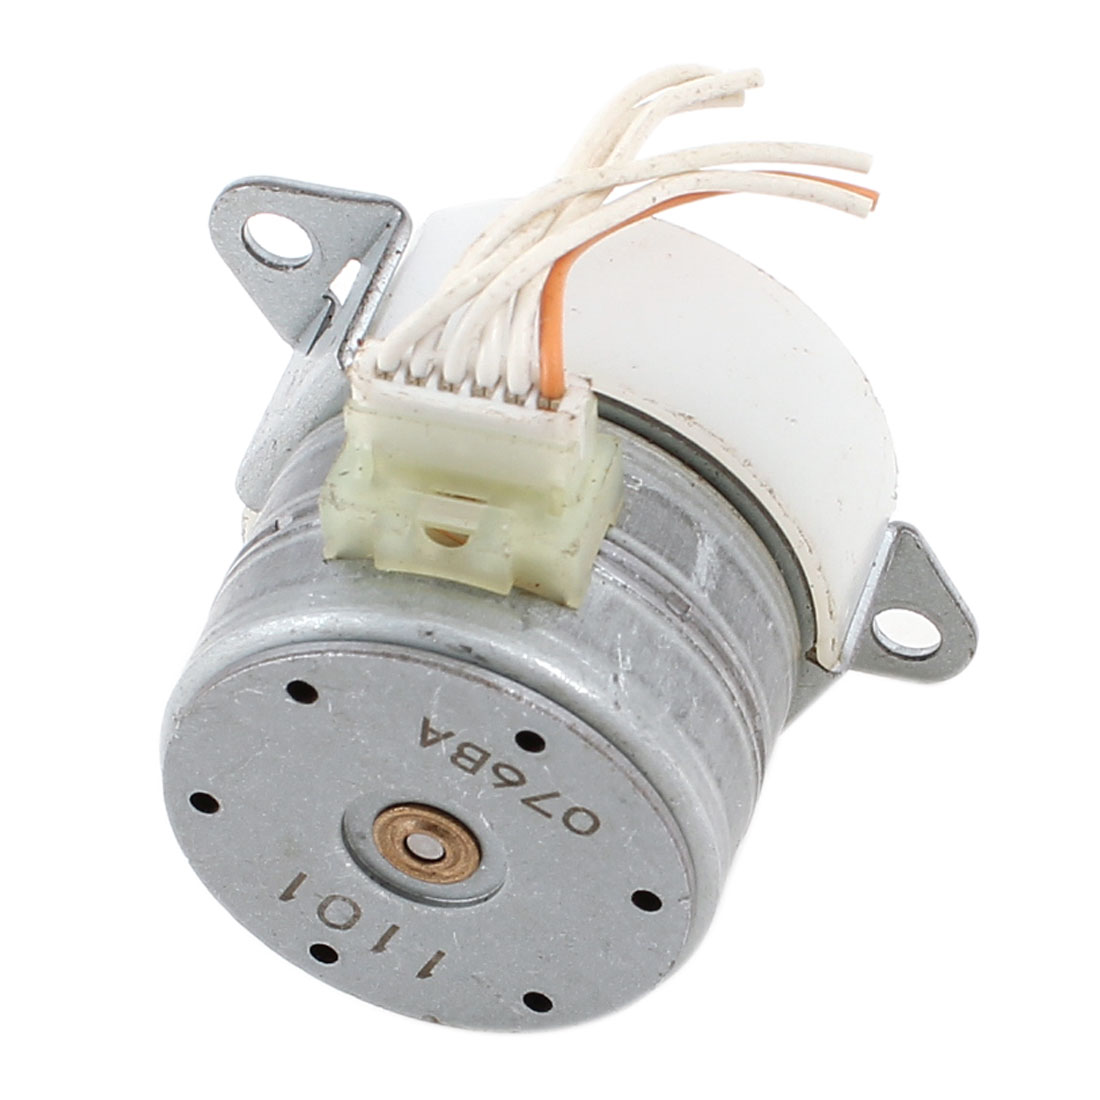 3mm Shaft 4500RPM Electric Reduction Stepper Stepping Motor 1:5 Ratio